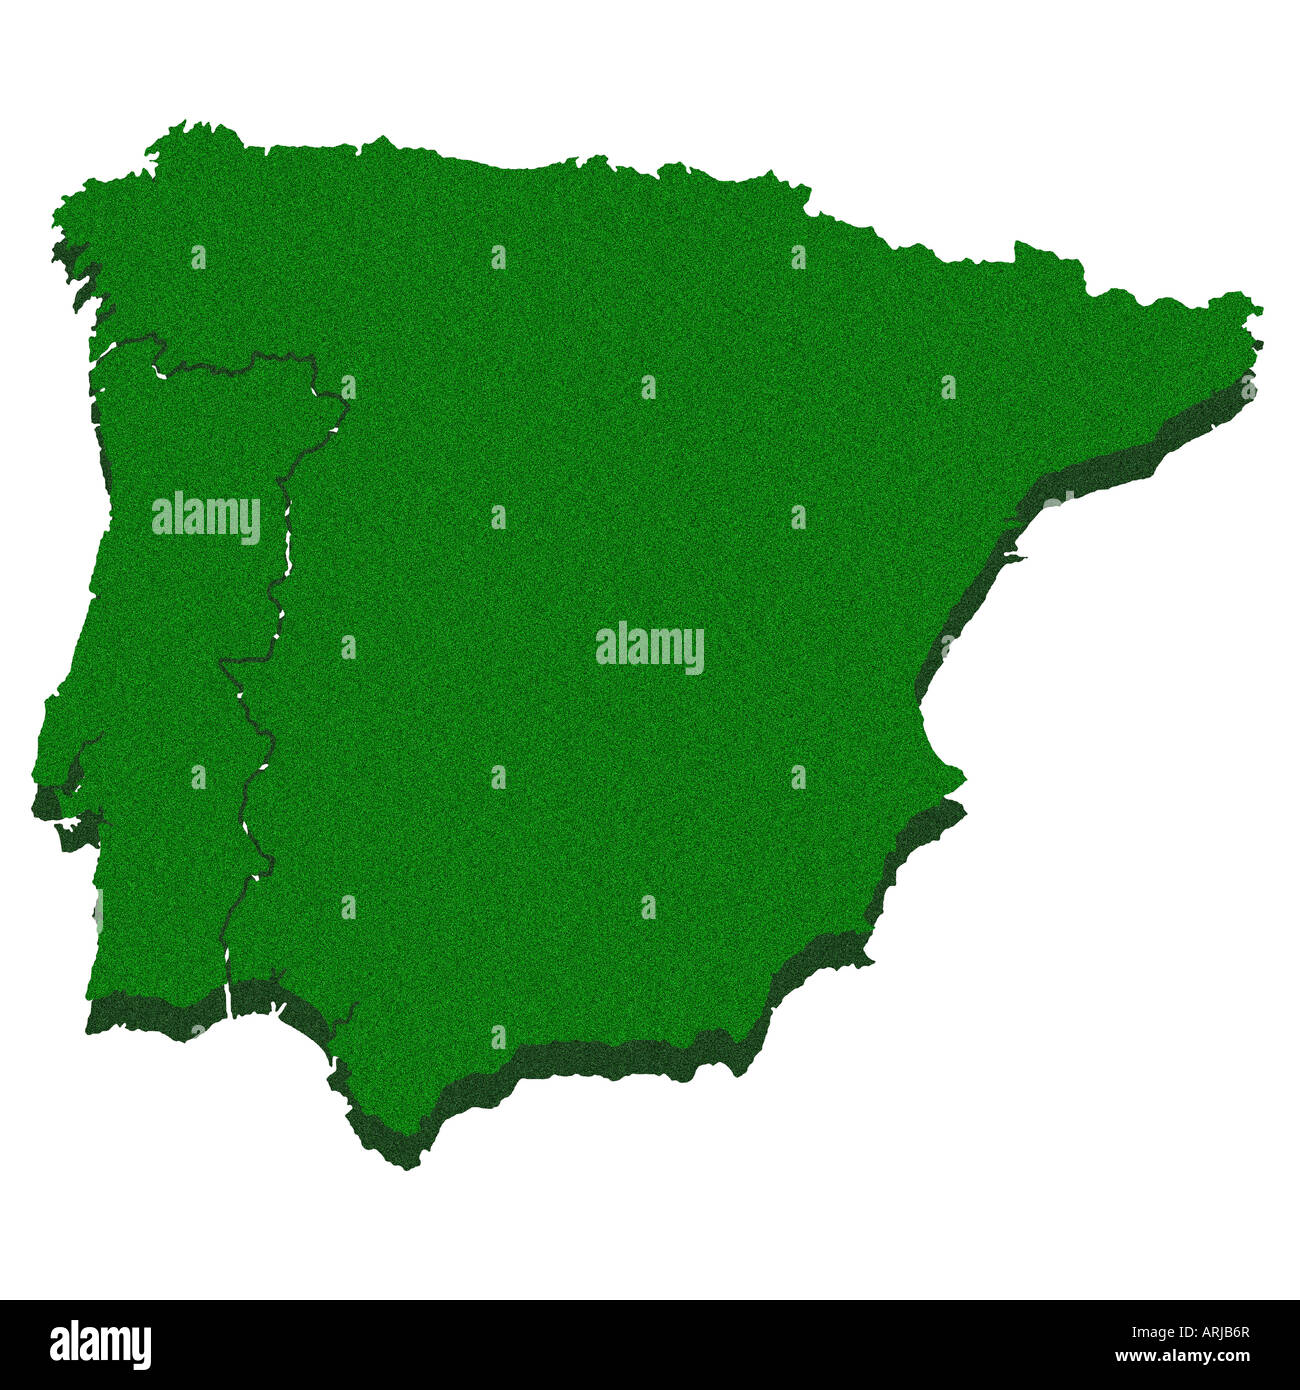 Image of: Outline Map Of Iberian Peninsula Stock Photo Alamy